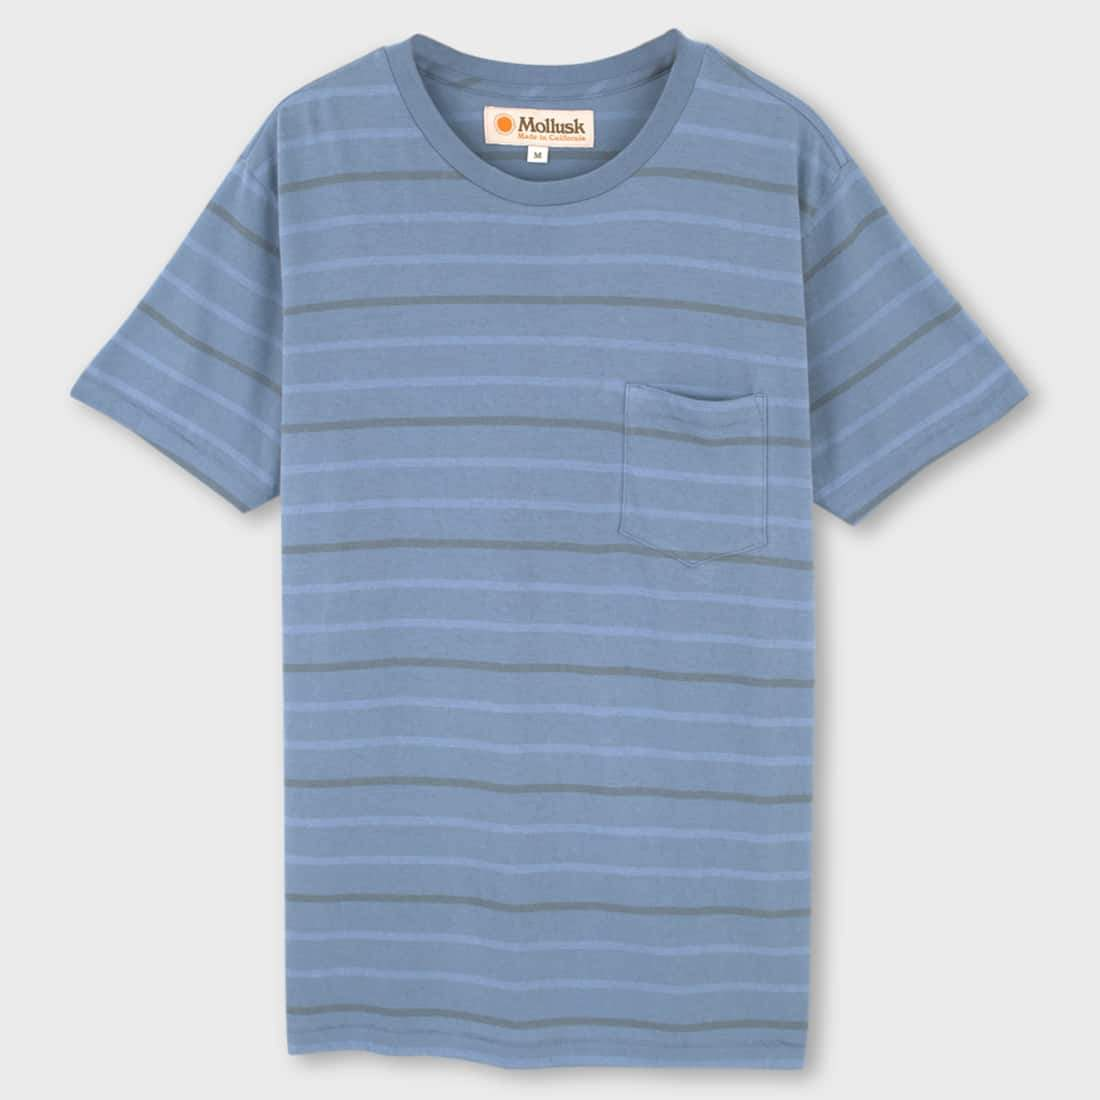 Mollusk Striped Pocket T-shirt Light Indigo Stripe